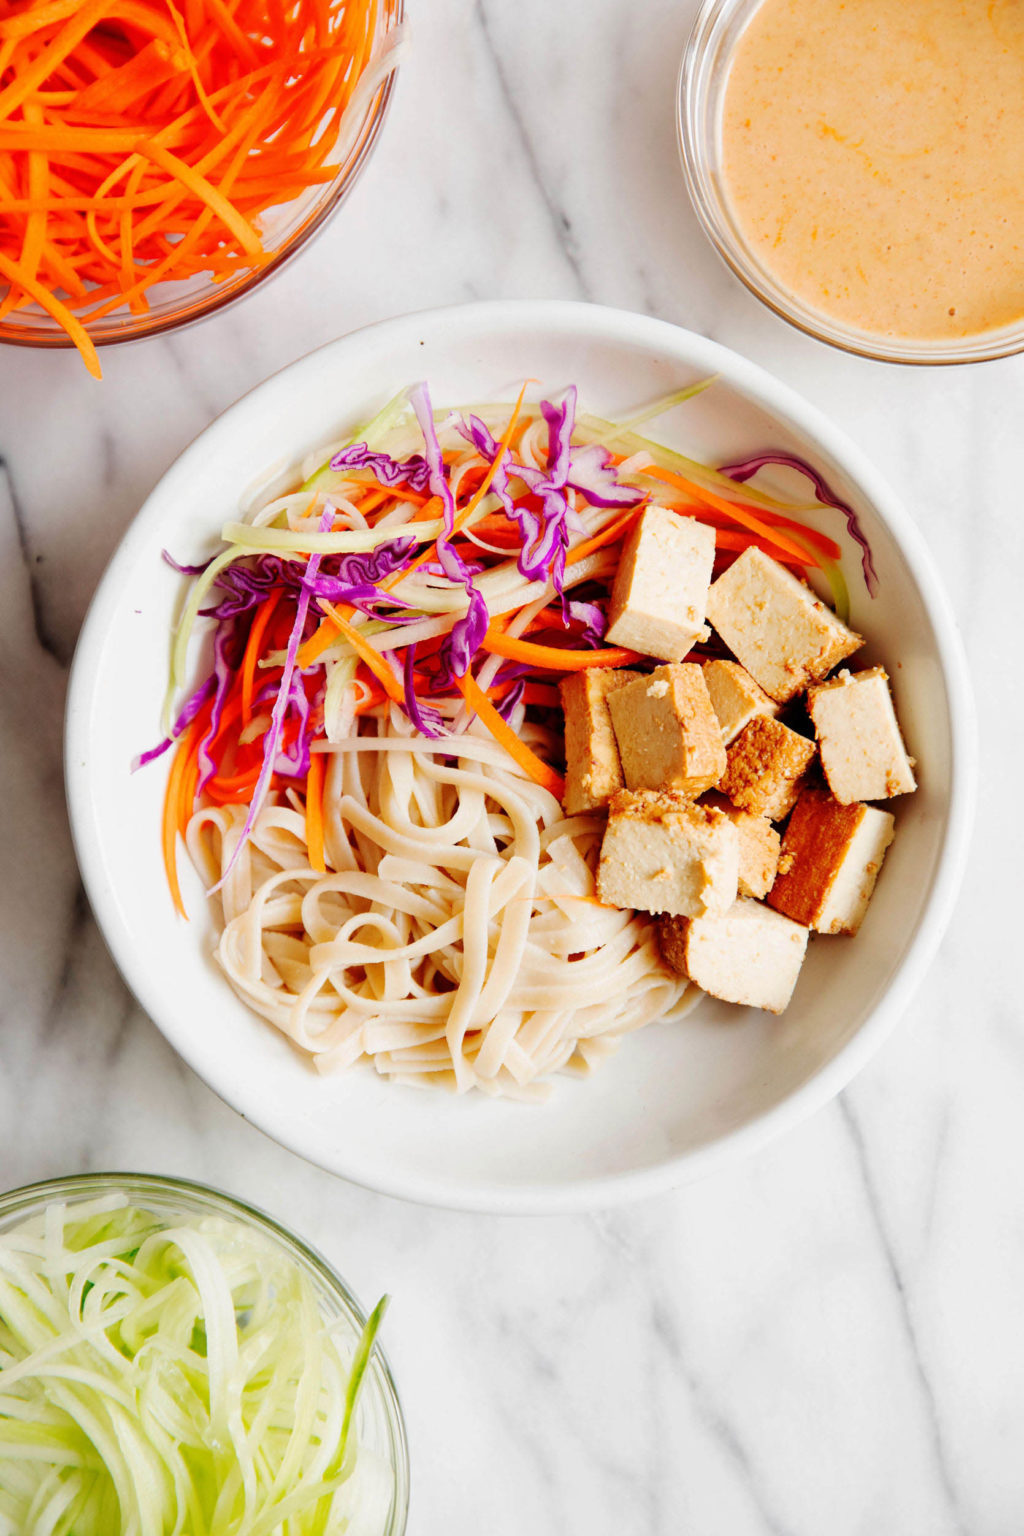 A bowl of tofu, noodles, and vegetables, surrounded by small glass bowls with prepared ingredients in them. The bowls rest on white marble.